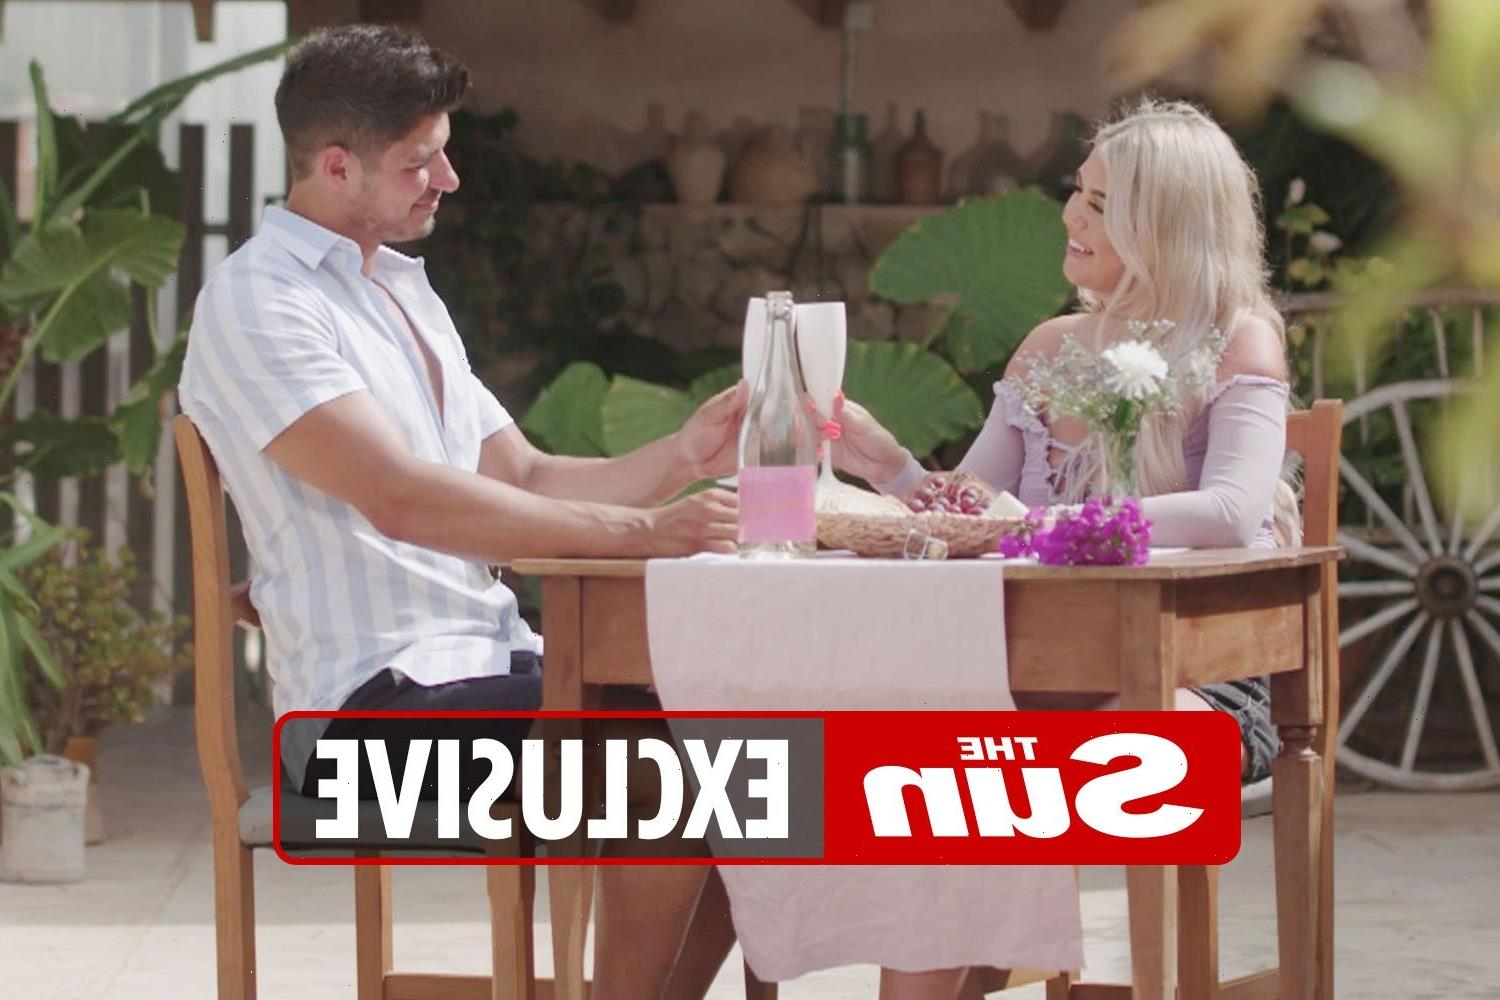 BBC launches Love Island for couples who haven't met during lockdown